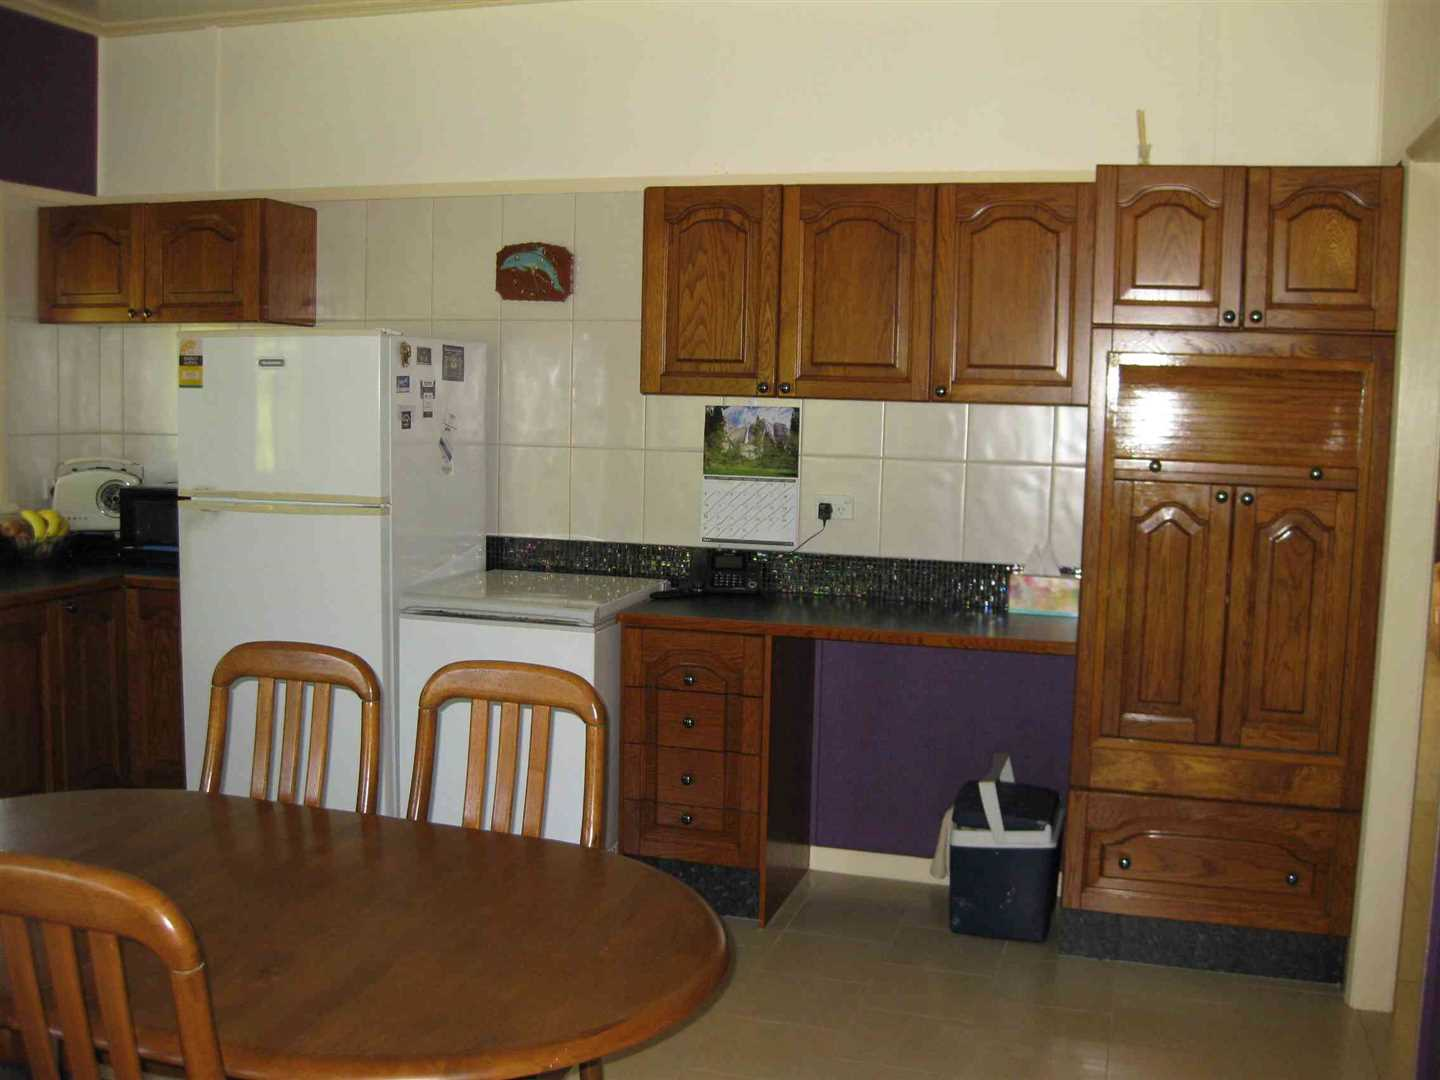 Inside view of part of home showing part of dining area and kitchen, photo 2